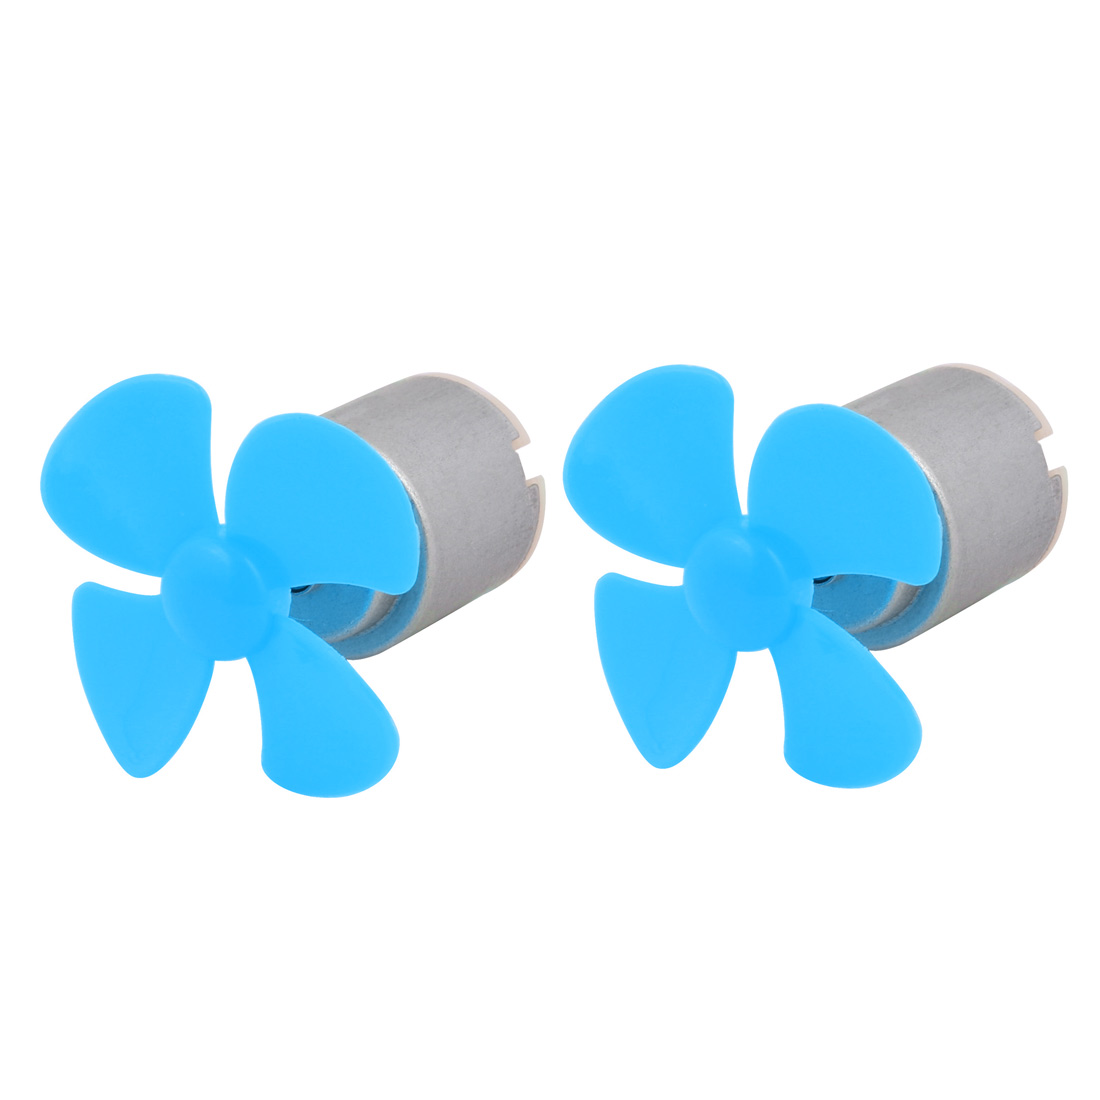 2pcs DC 3V 0.13A 6500RPM Strong Force Motor 4 Blades 40mm Blue Propeller for RC Aircraft